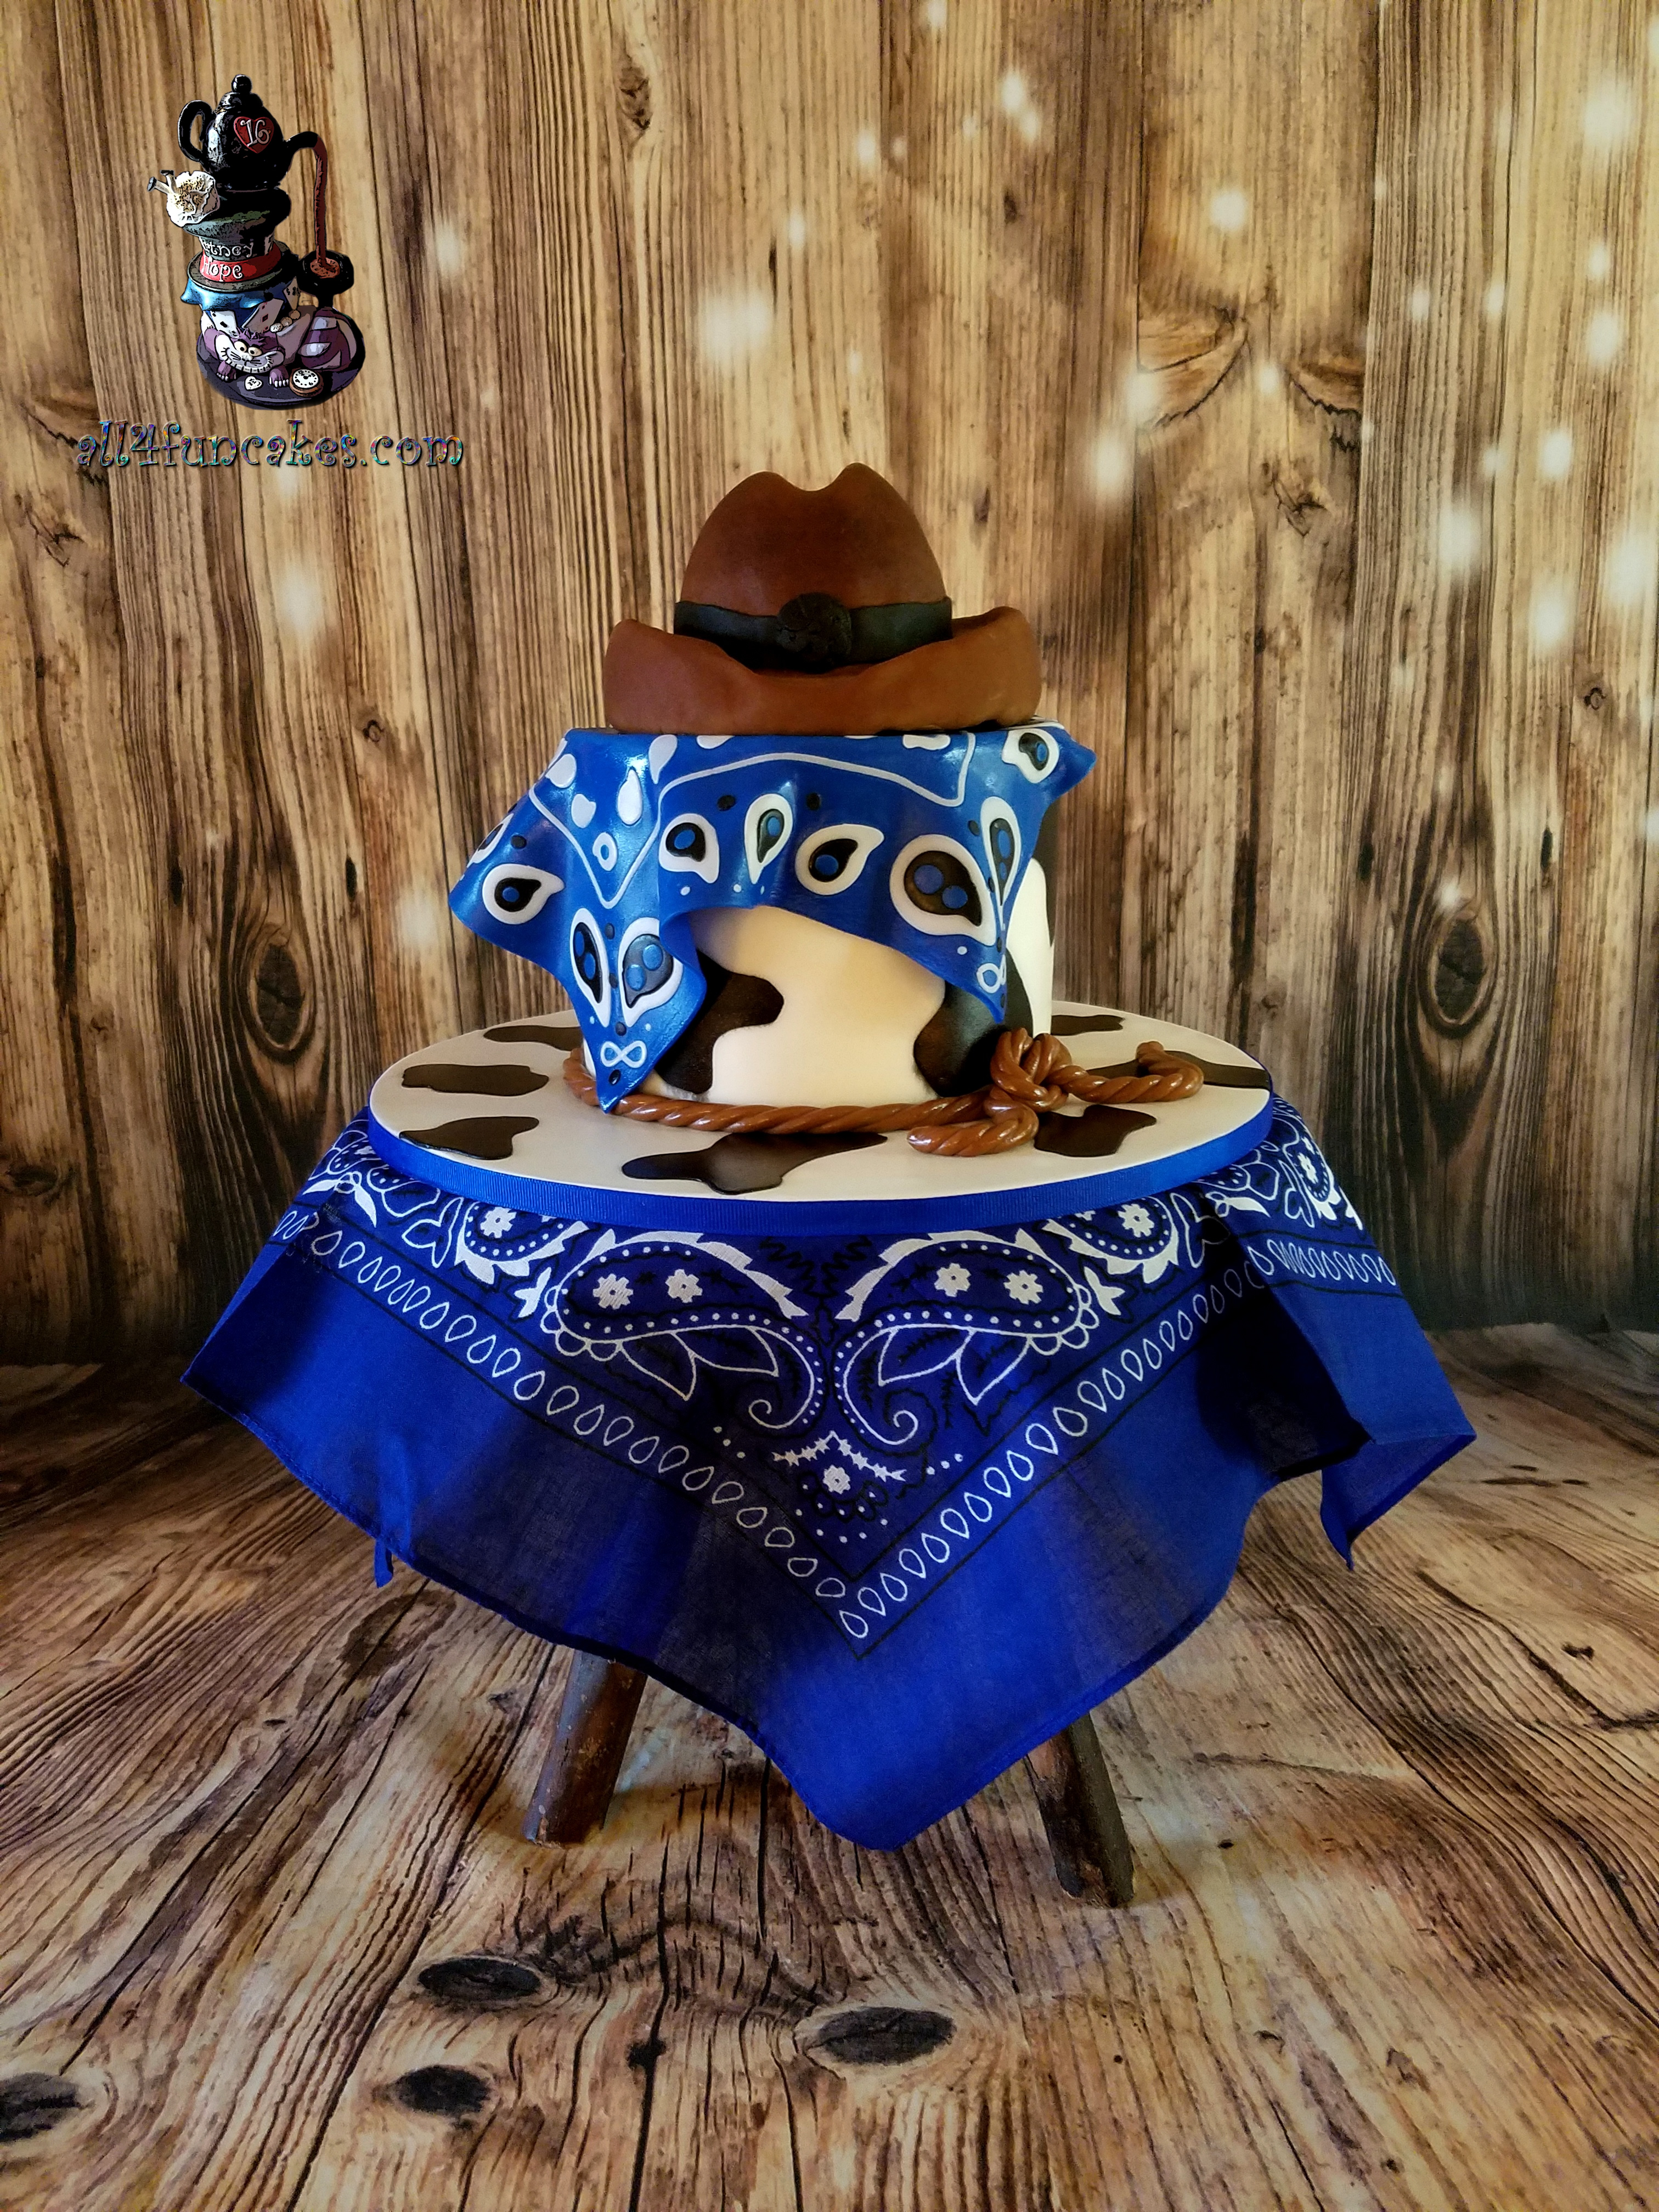 Gluten Free Chocolate Caramel Cowboy Hat Western Special Occasion Cake by All4Fun Cakes LLC